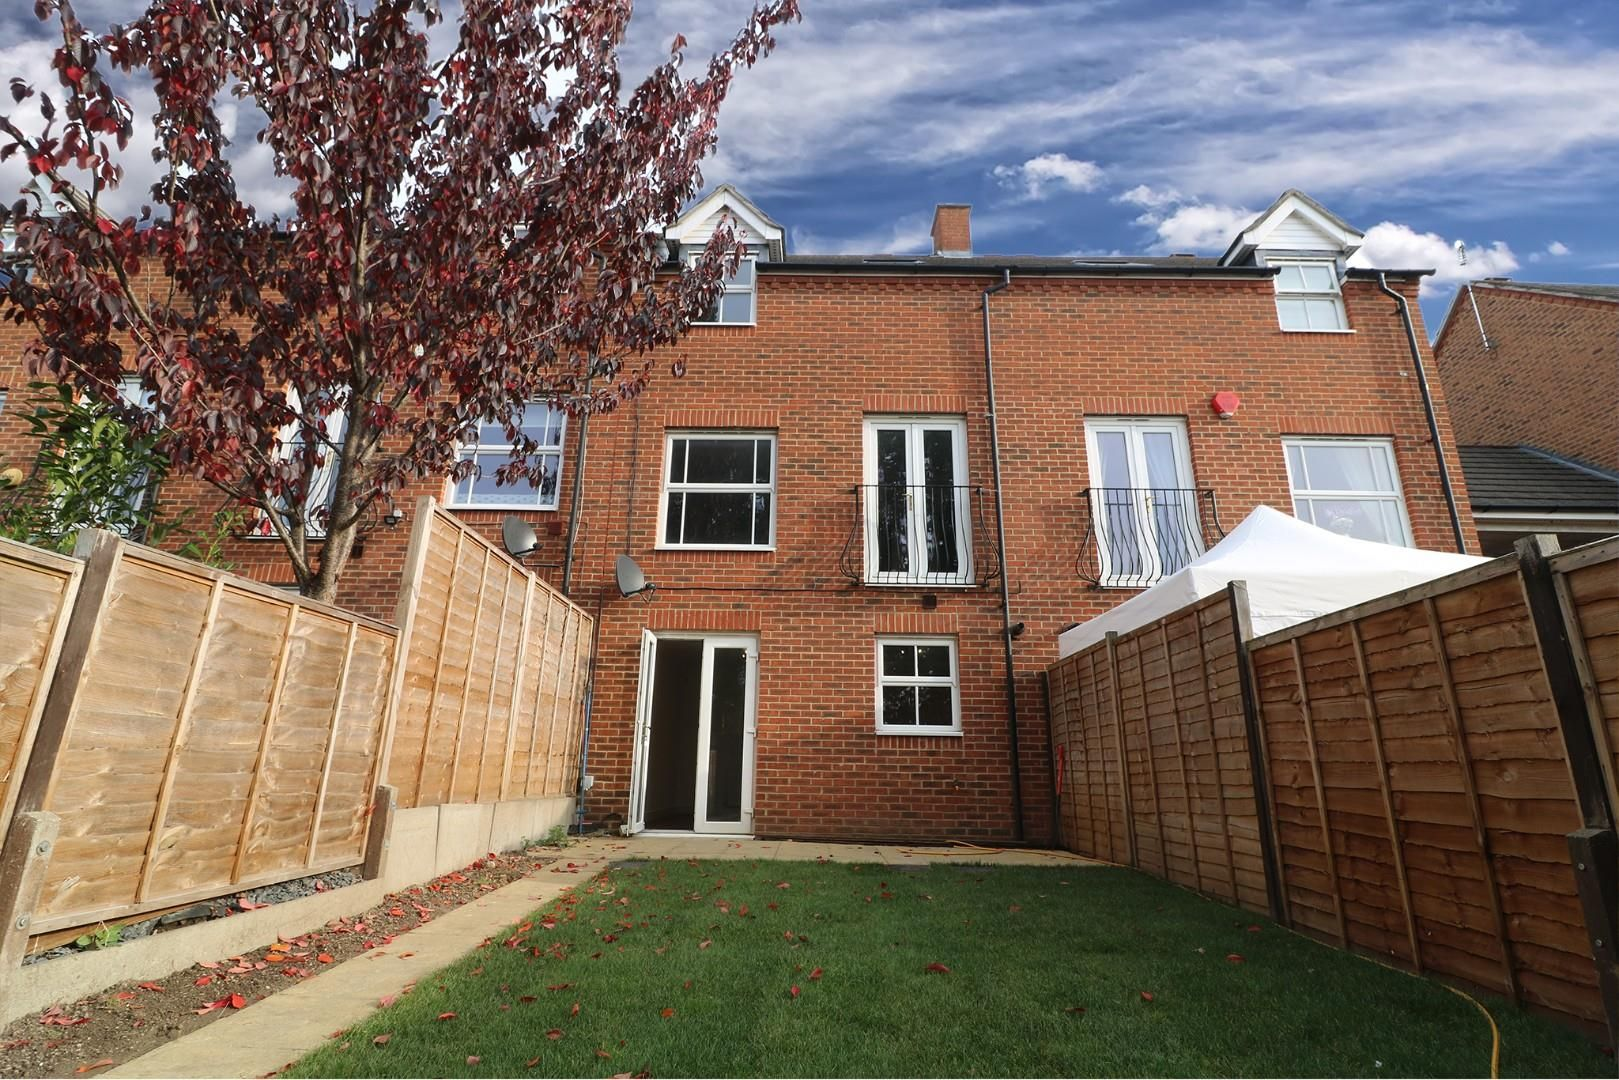 4 bed town house for sale, RG12